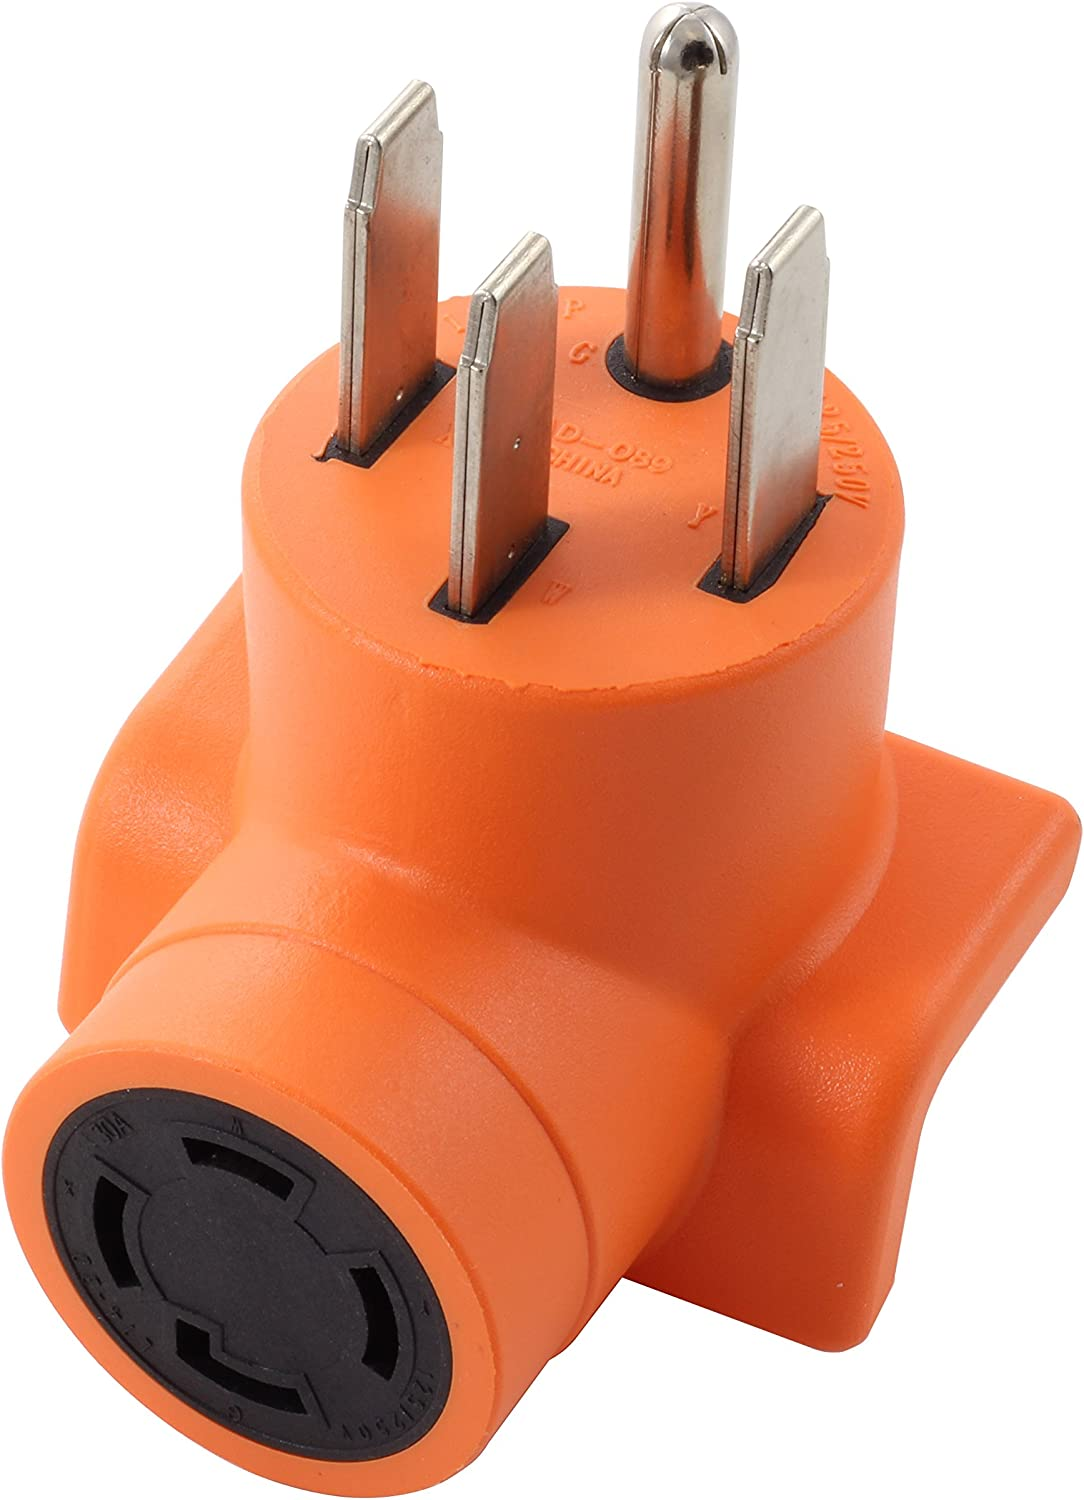 AC WORKS [AD1450L1430] Range/RV/Generator Outlet Adapter 4-Prong 14-50P Plug to 4-Prong 30Amp Locking L14-30R Adapter